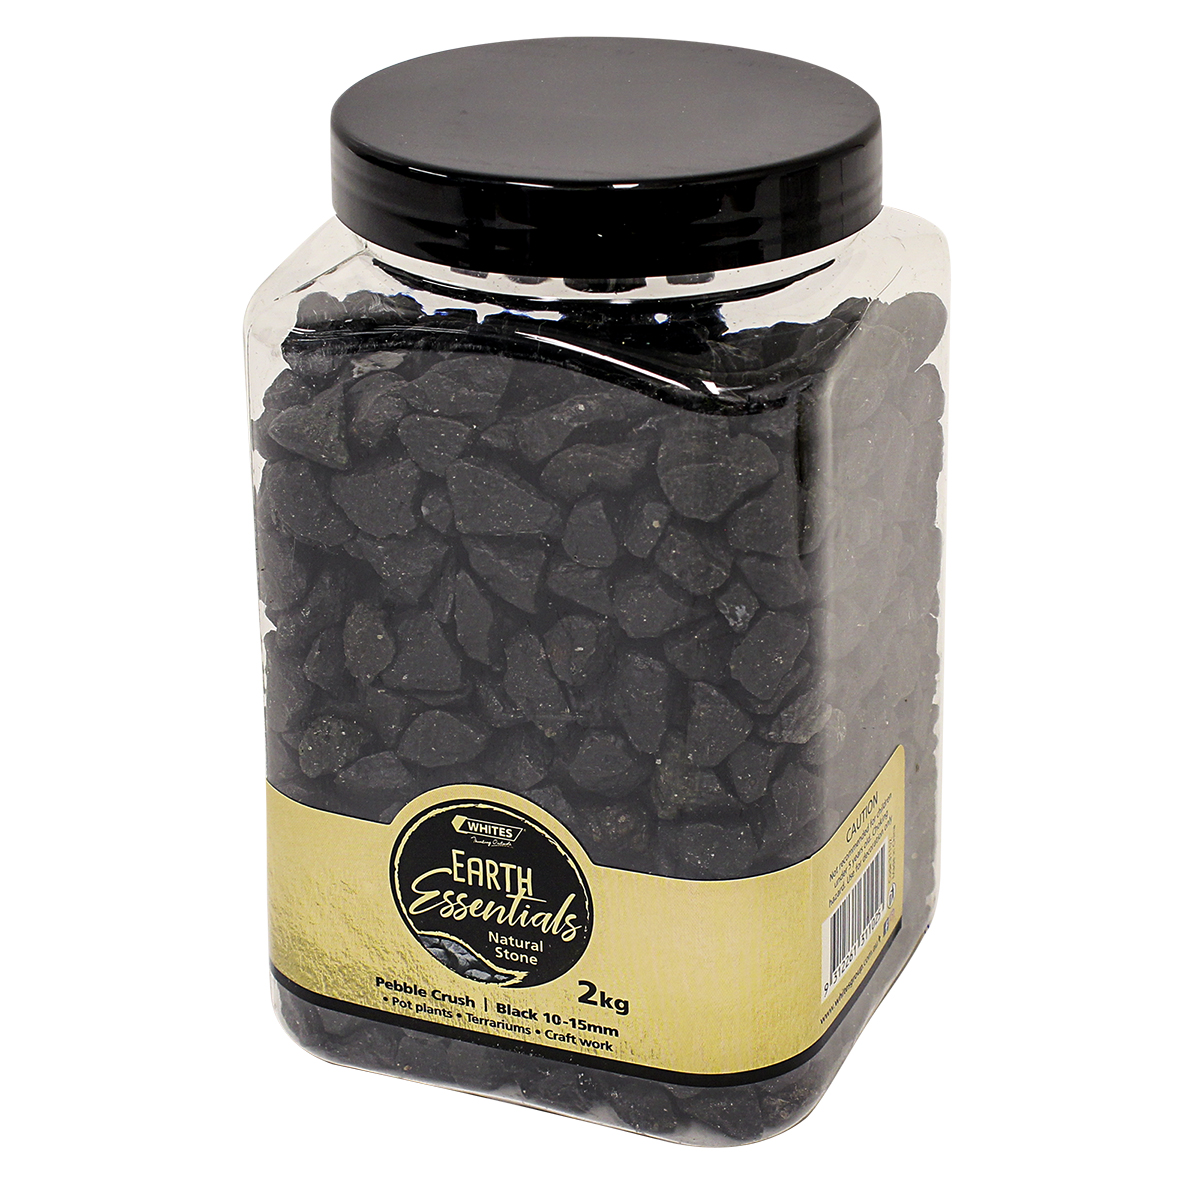 31102 - Pebble Crush Black Rock Jar 2kg